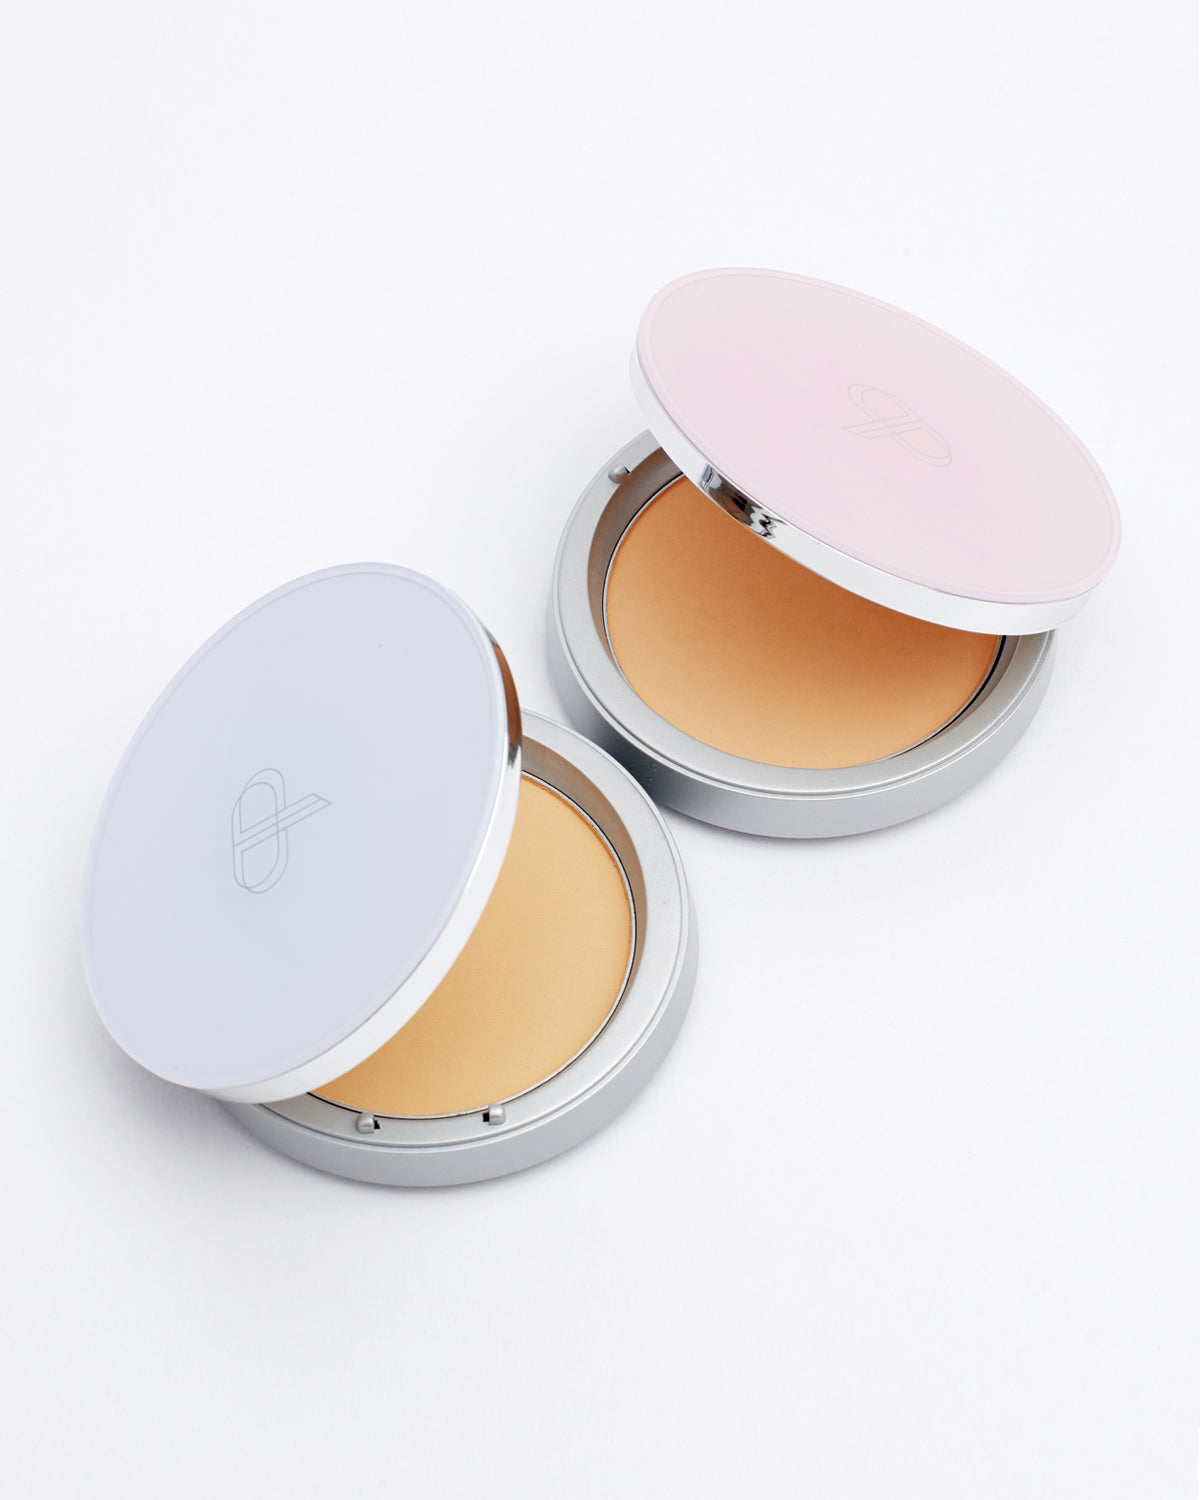 Perfume Powder Pact 5G Moist